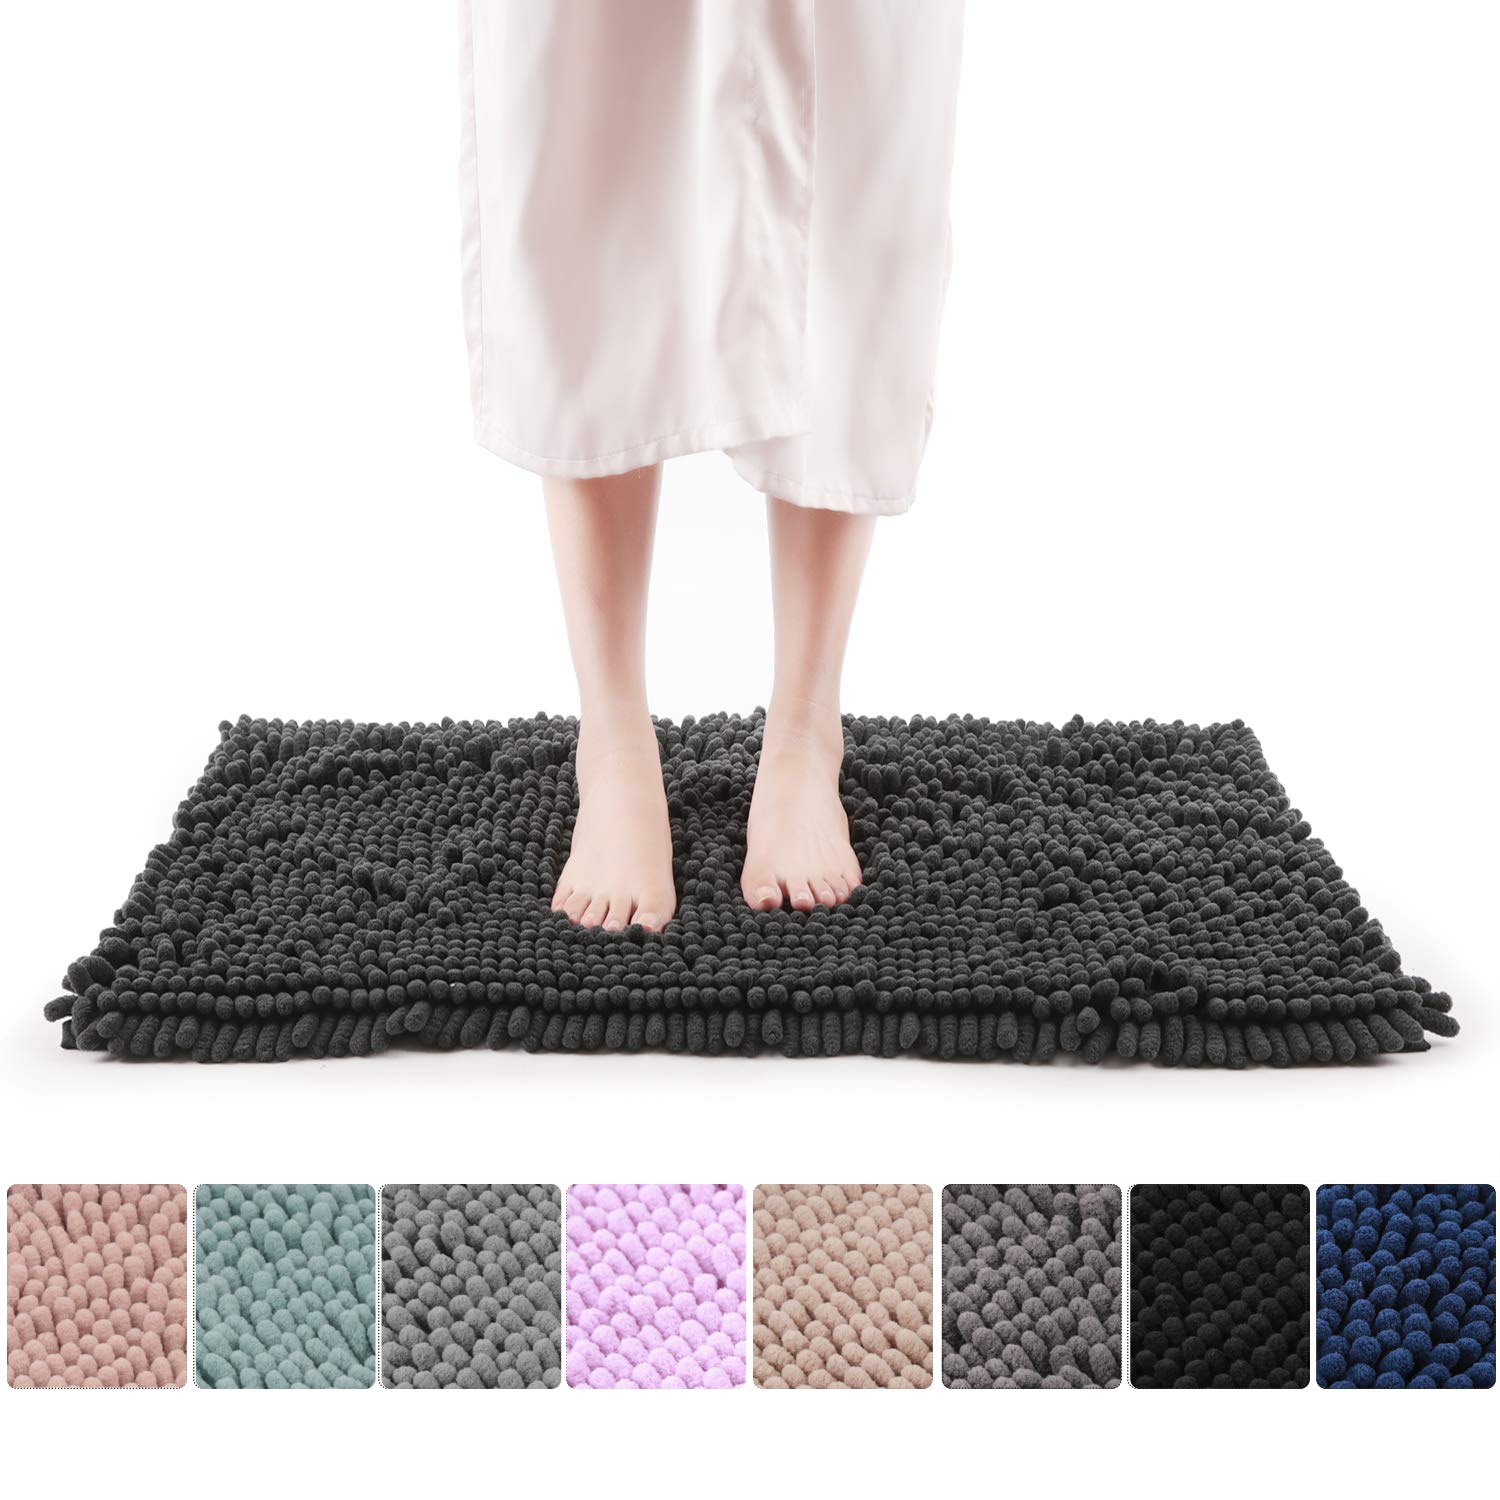 Freshmint Chenille Bath Rugs Extra Soft and Absorbent Microfiber Shag Rug, Non-Slip Runner Carpet for Tub Bathroom Shower Mat, Machine-Washable Durable Thick Area Rugs (16.5'' x 24'', Black) by Freshmint